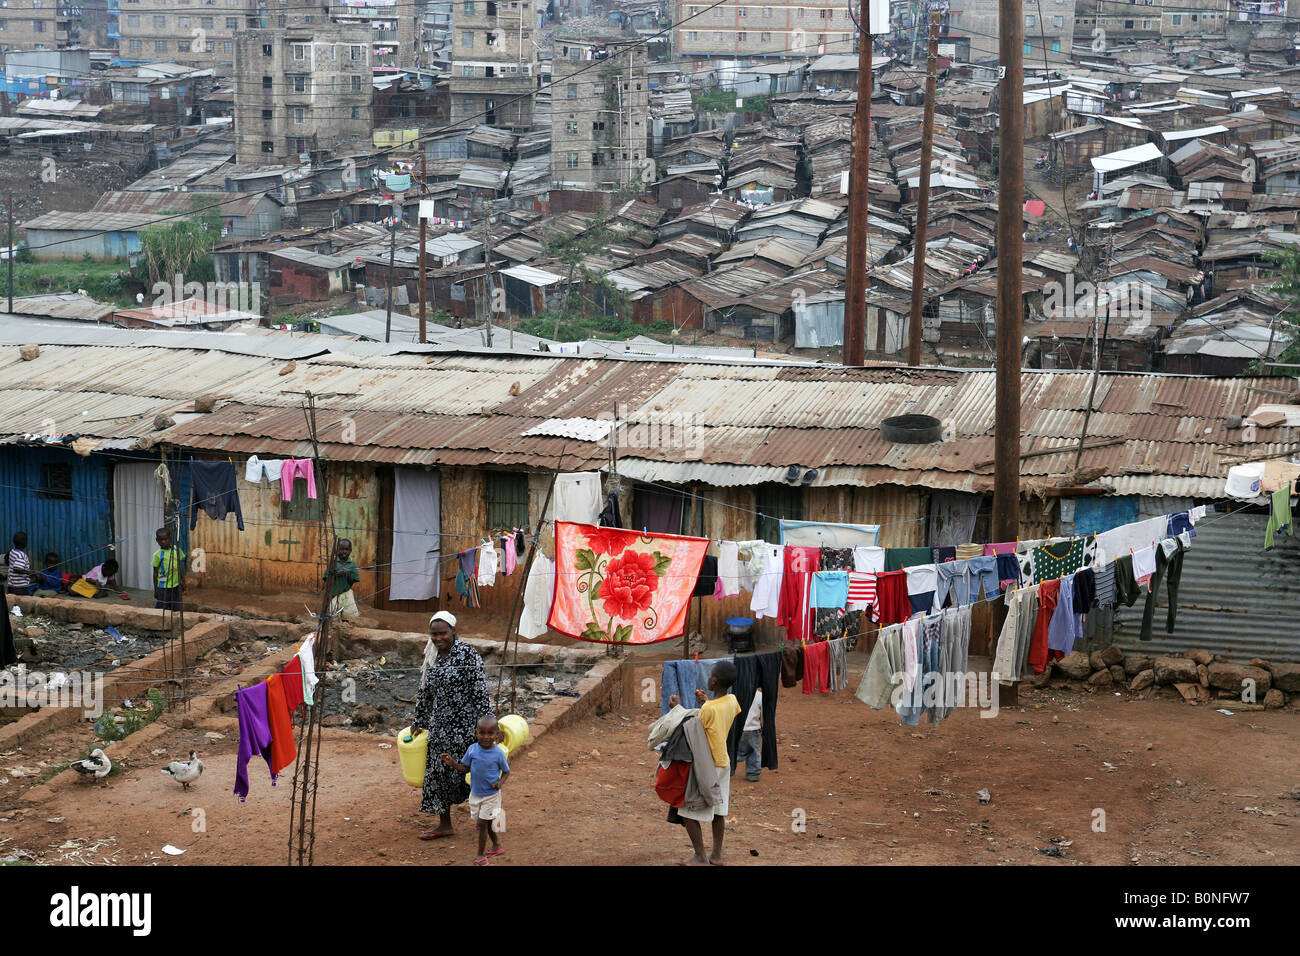 Mathare Valley, one of the most notorious slum in Nairobi, Kenya - Stock Image